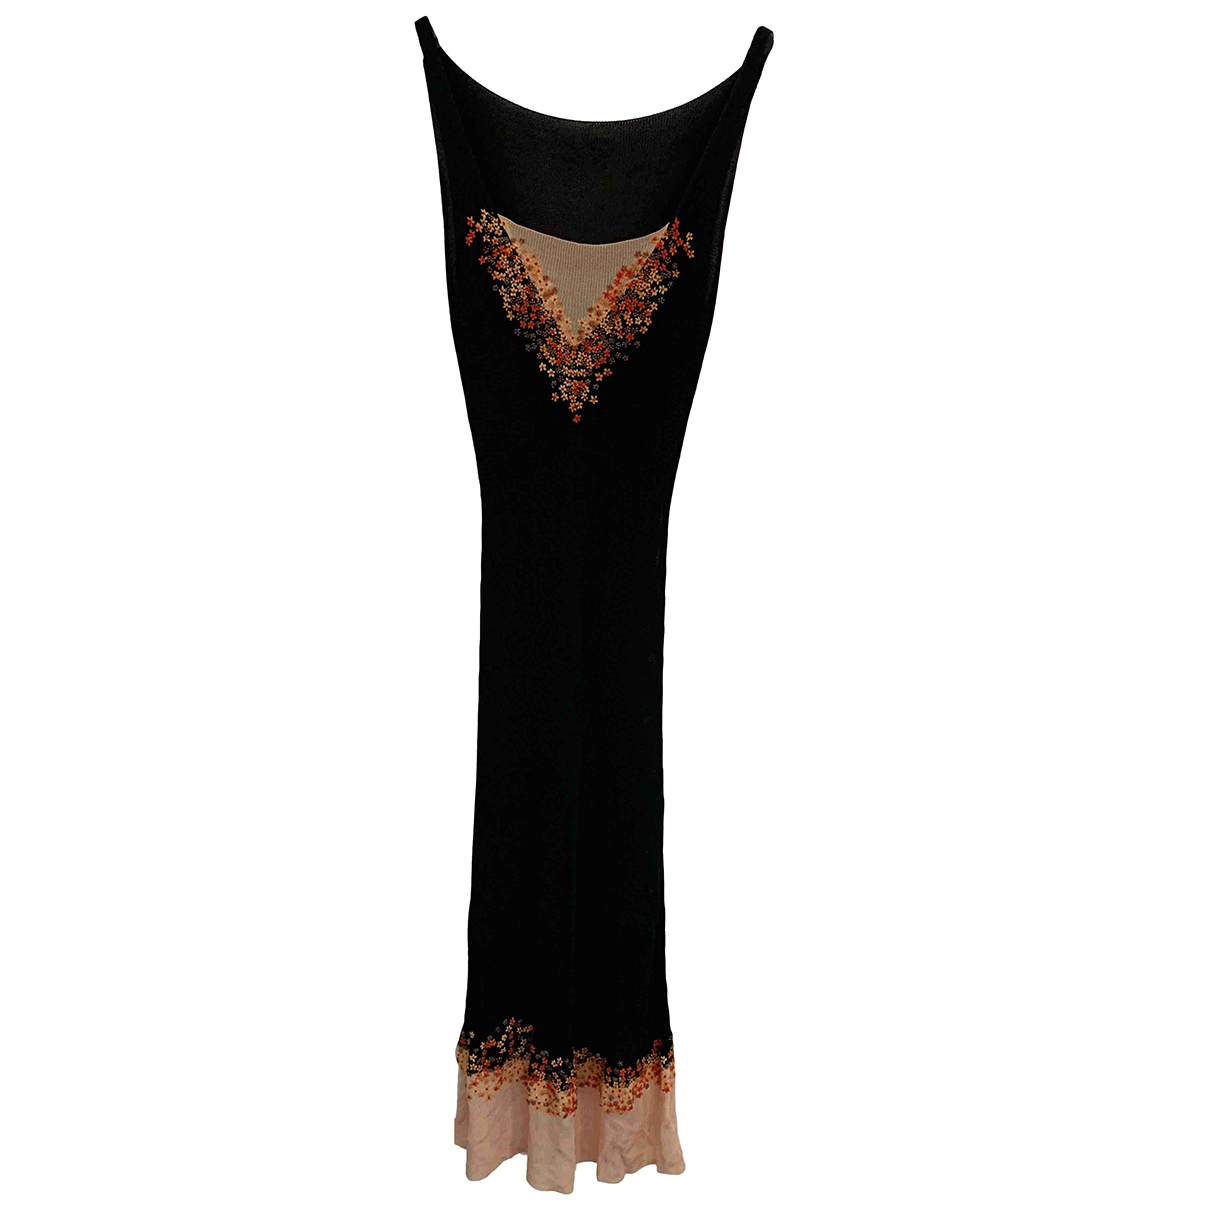 Moschino Cheap And Chic N Black dress for Women 44 IT